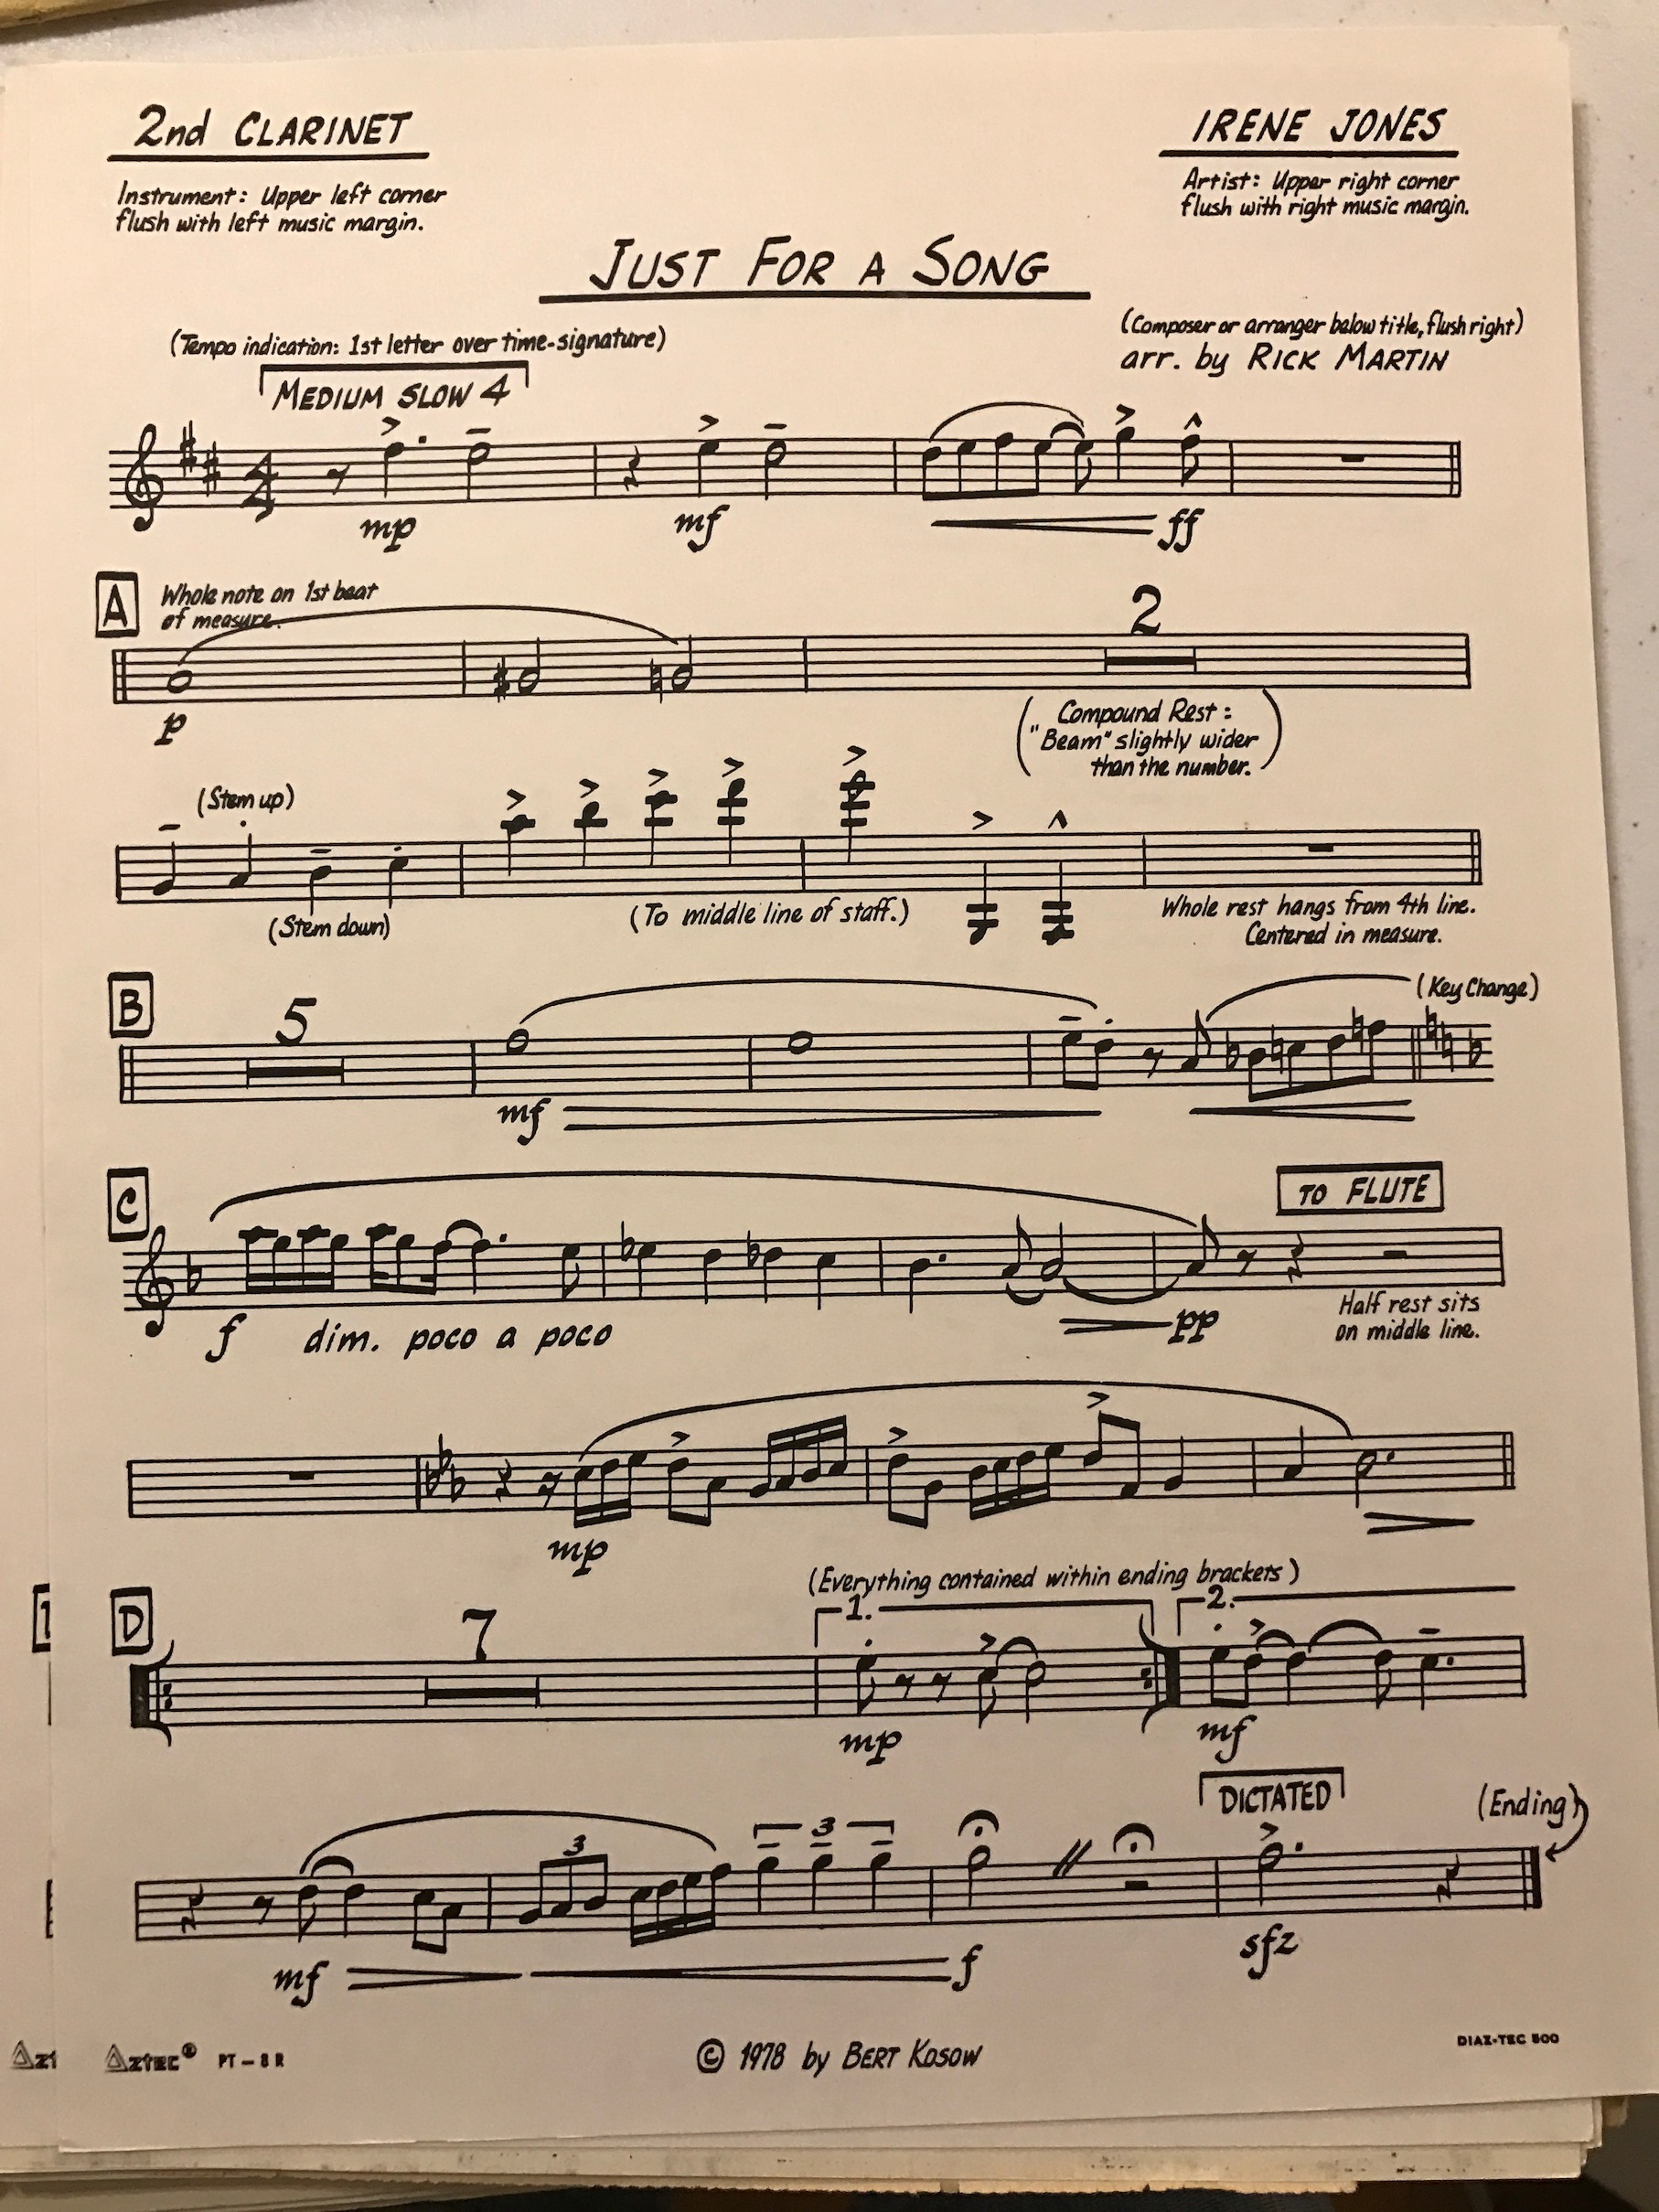 A few brief thoughts about the size of music paper - Scoring